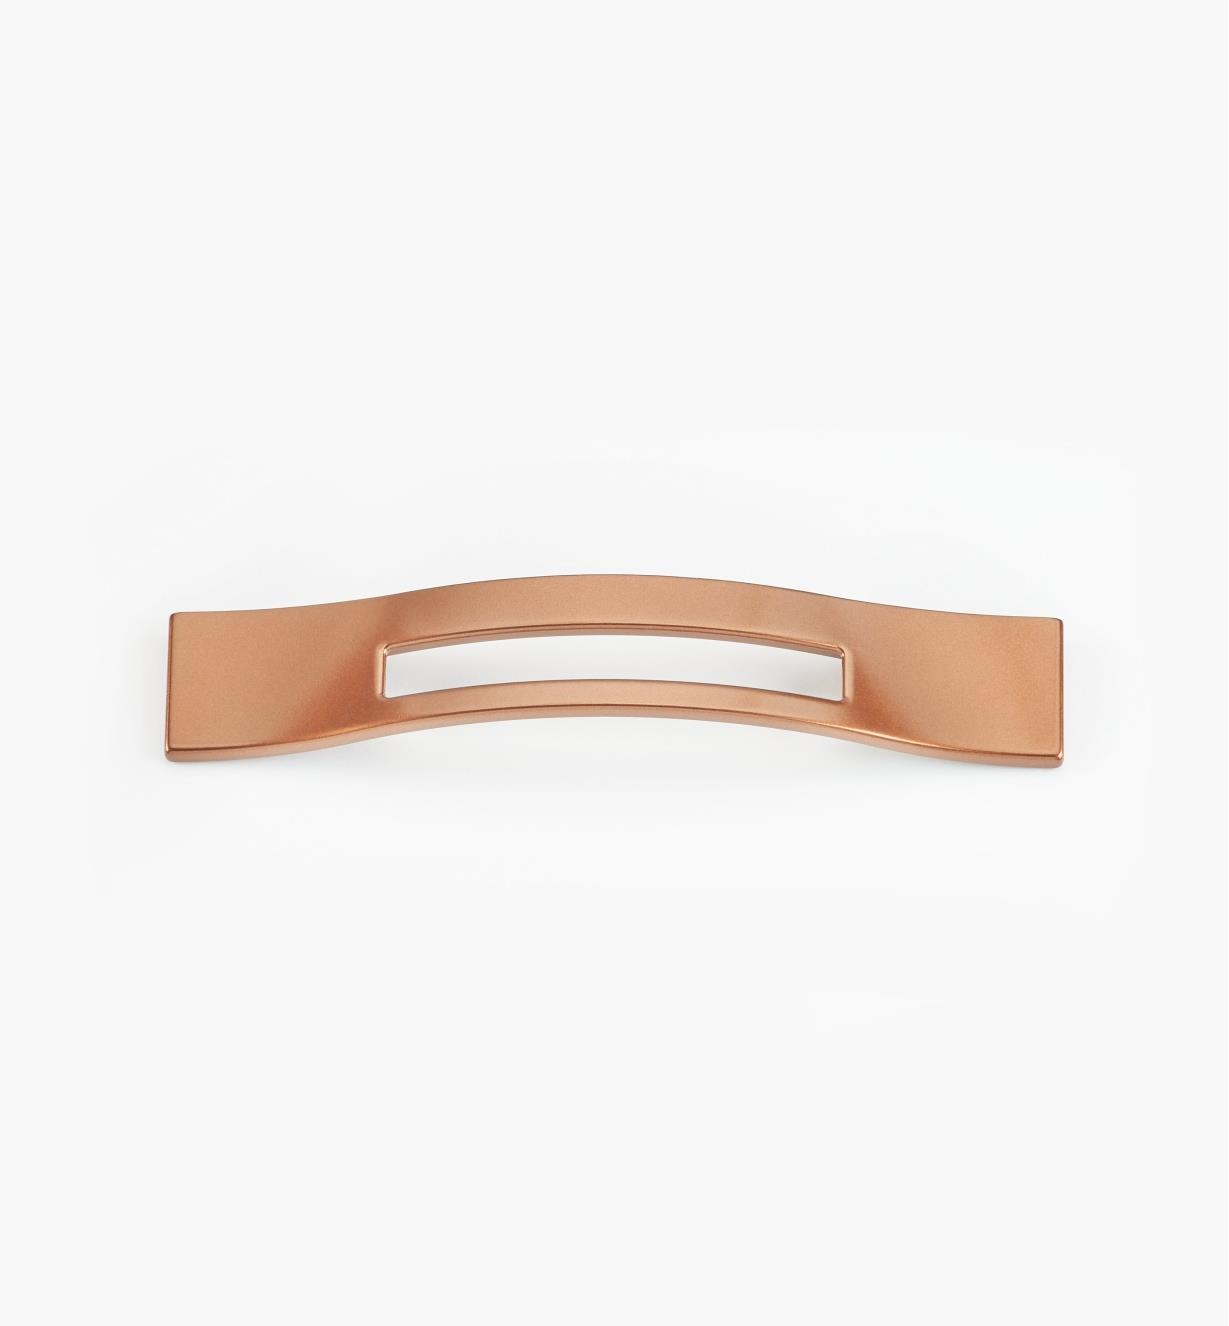 02W3971 - Ondula Tuscan Copper Handle